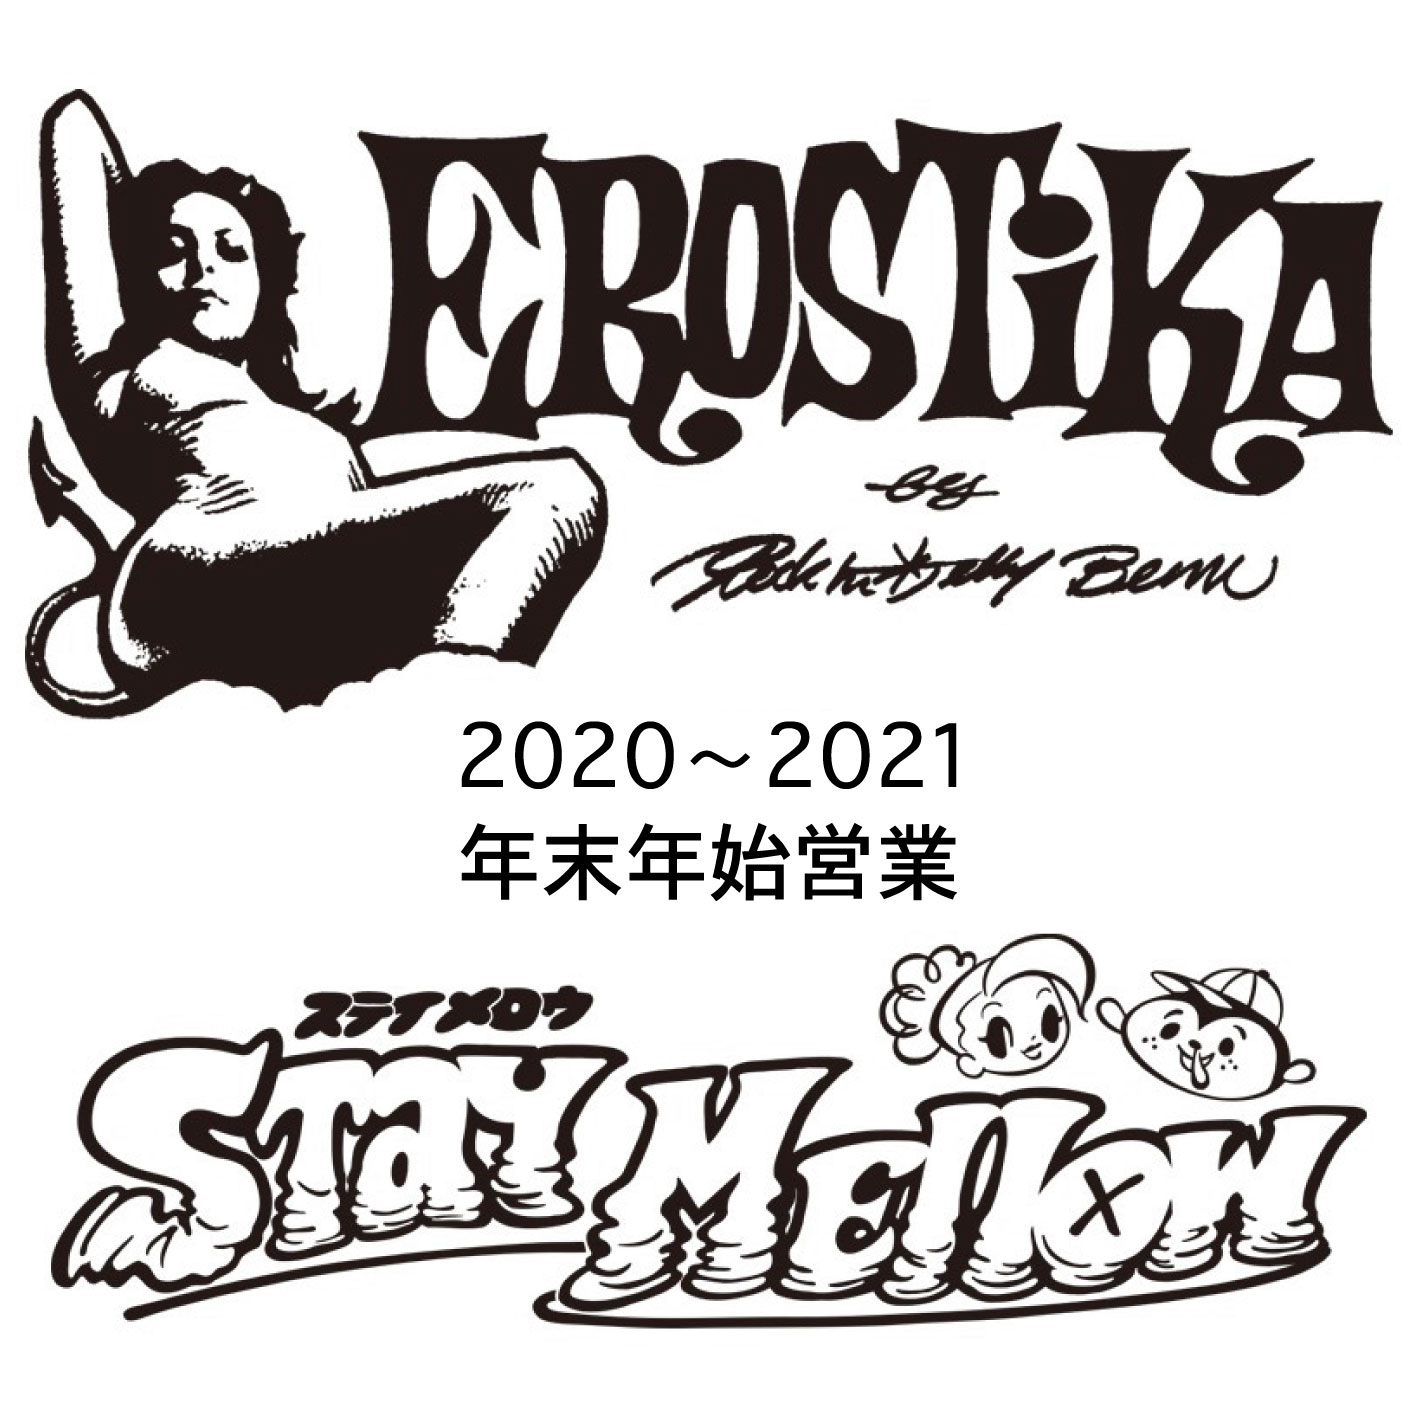 EROSTIKA NAGOYA & STAYMELLOW年末年始の営業